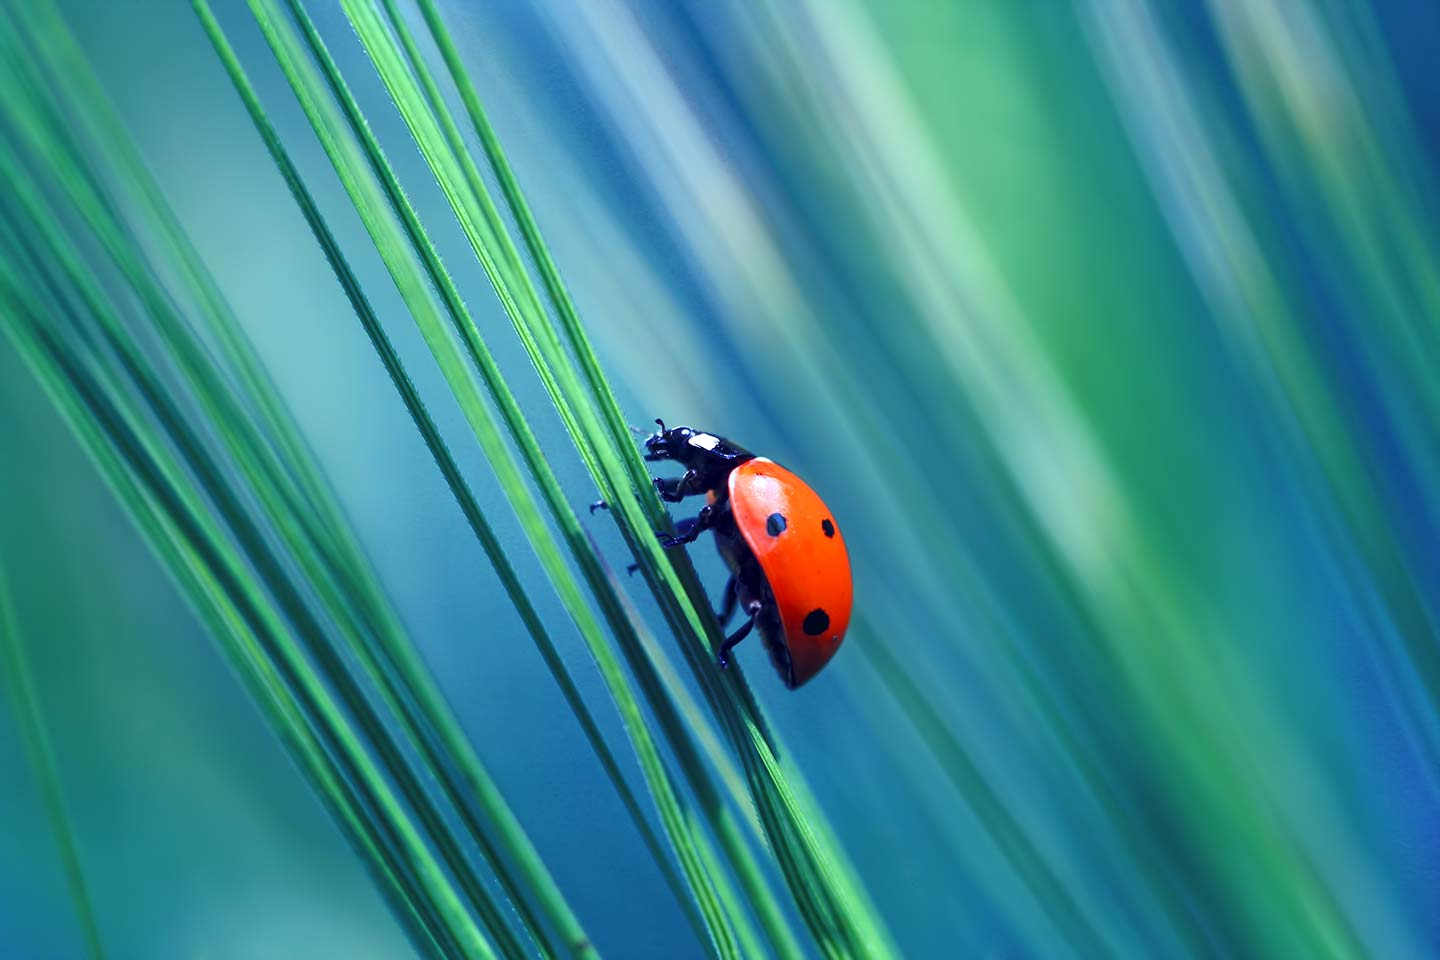 Ladybug found in the grass